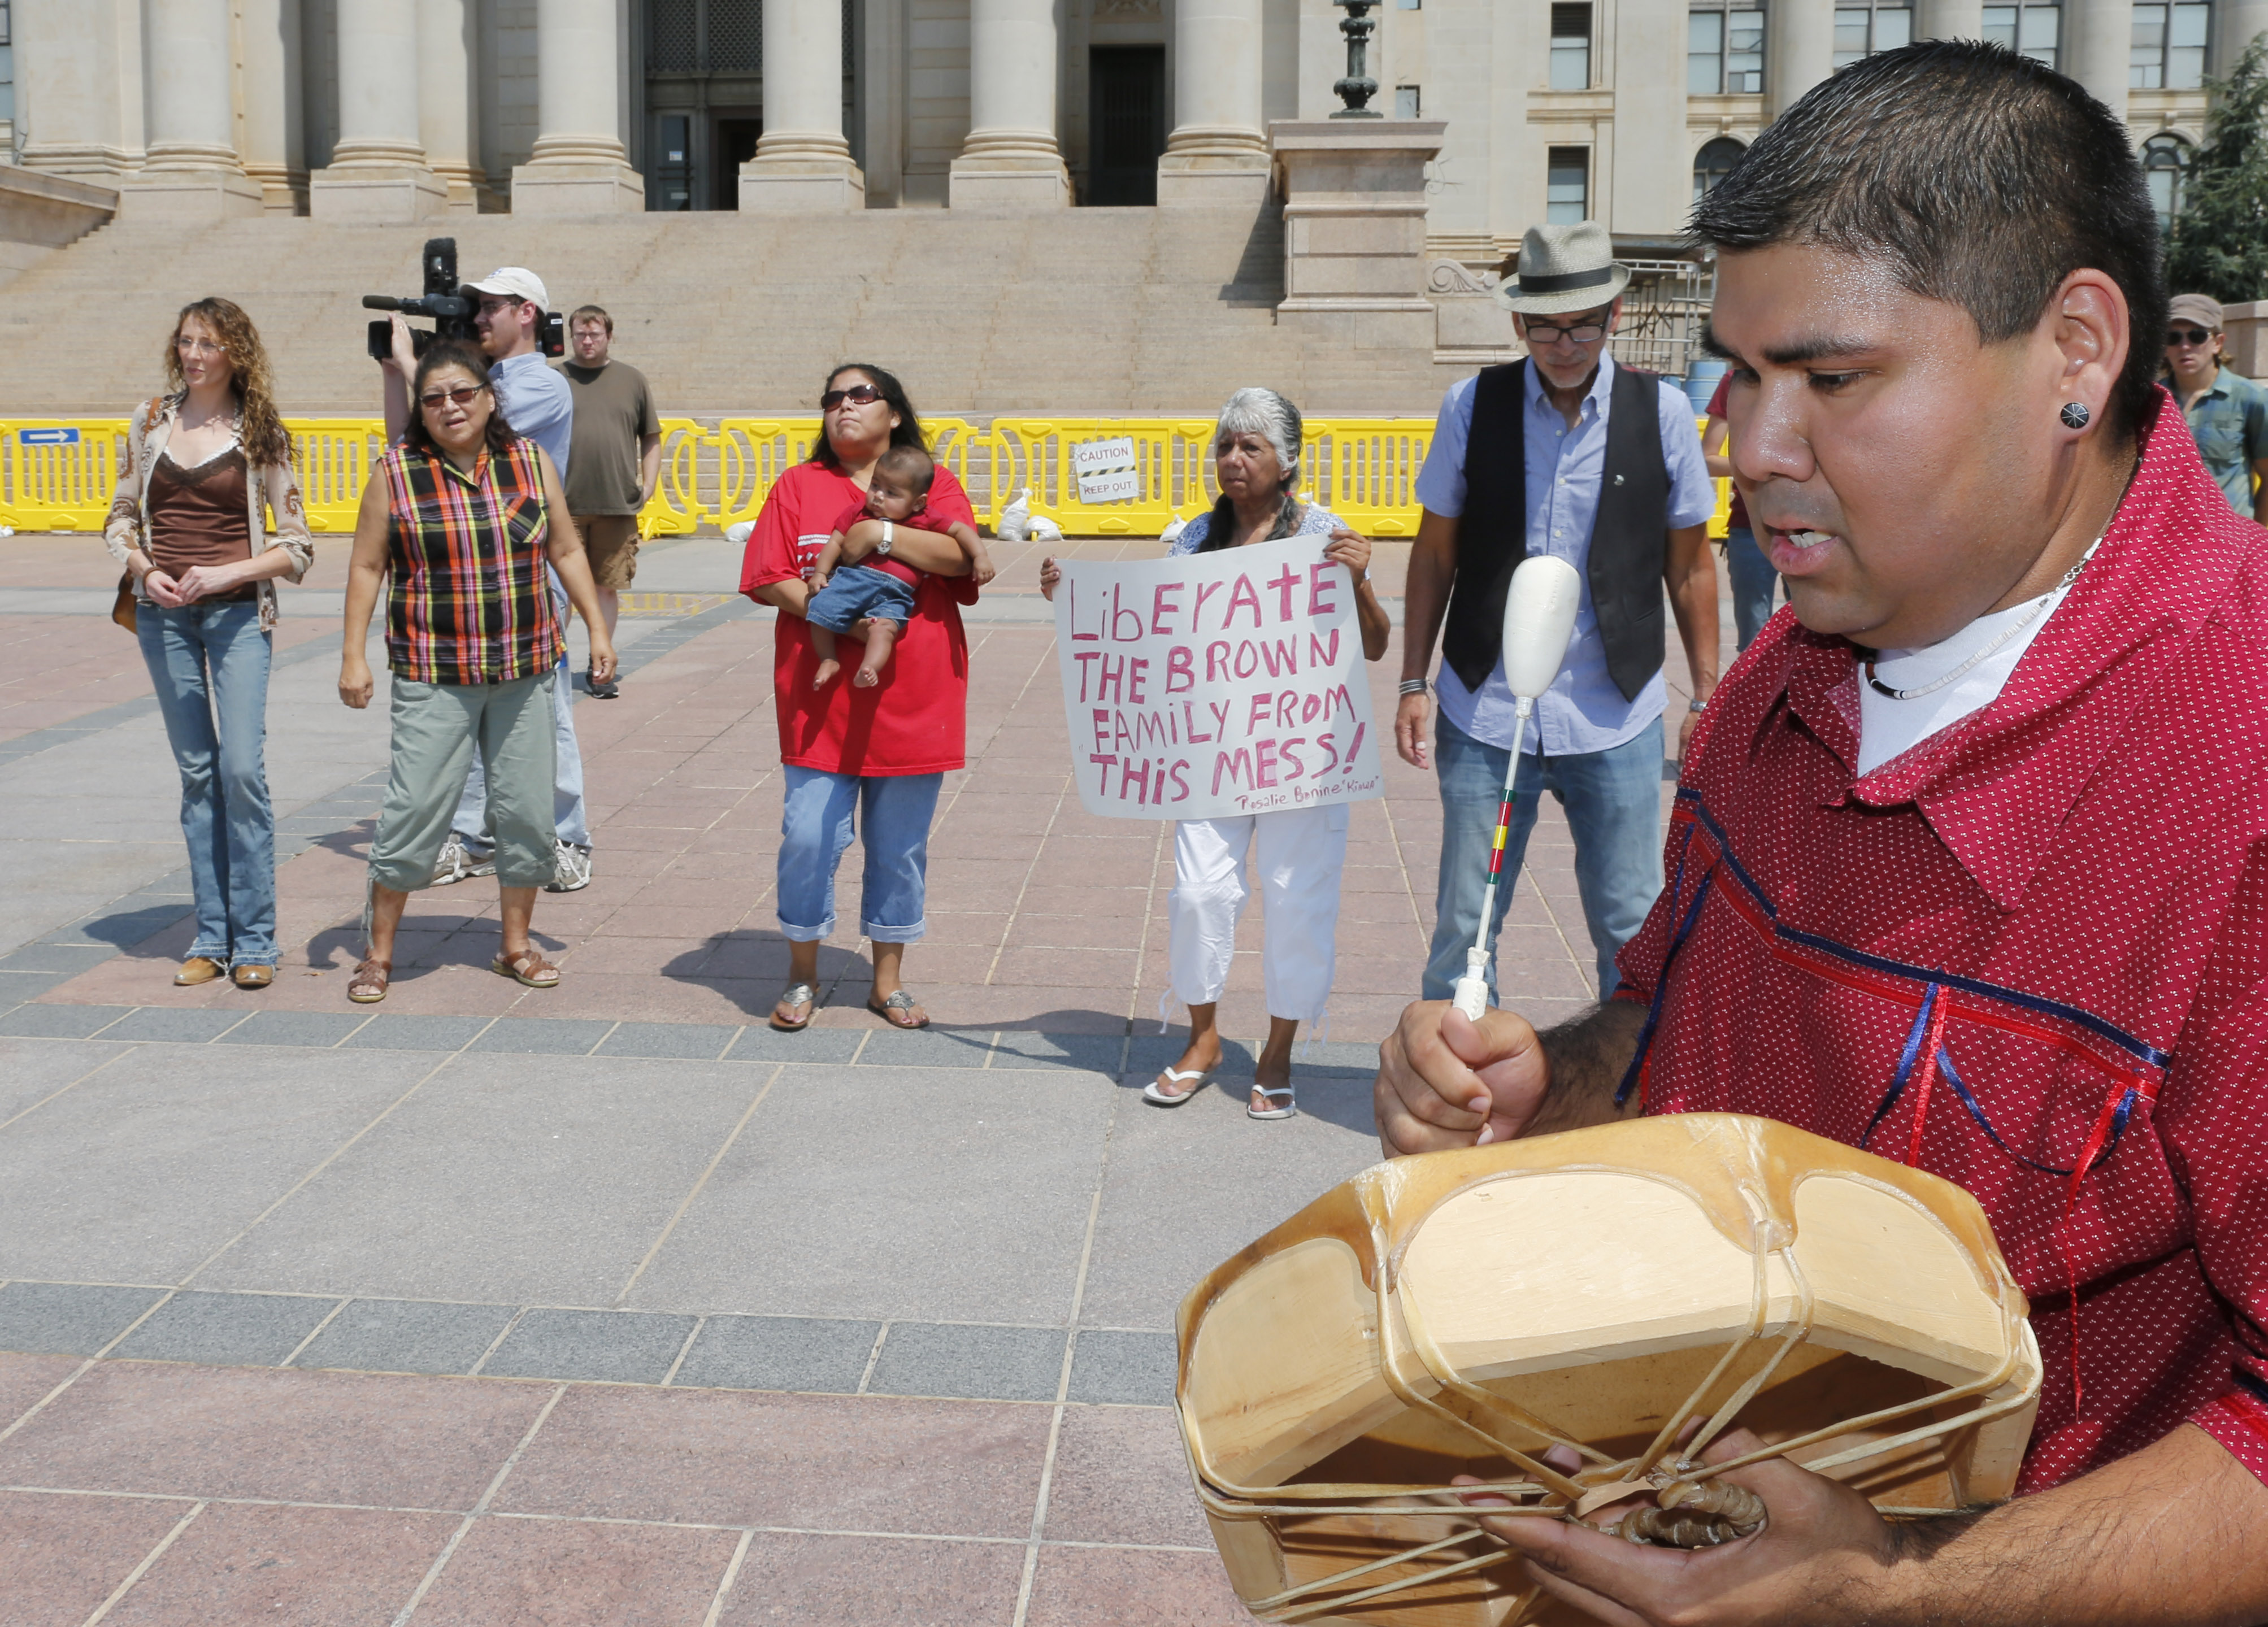 <p>Chebon Kernell beats a drum and sings as participants dance during a rally in support of three-year-old baby Veronica, Veronica's biological father, Dusten Brown, and the Indian Child Welfare Act, in Oklahoma City, Monday, Aug. 19, 2013.</p>